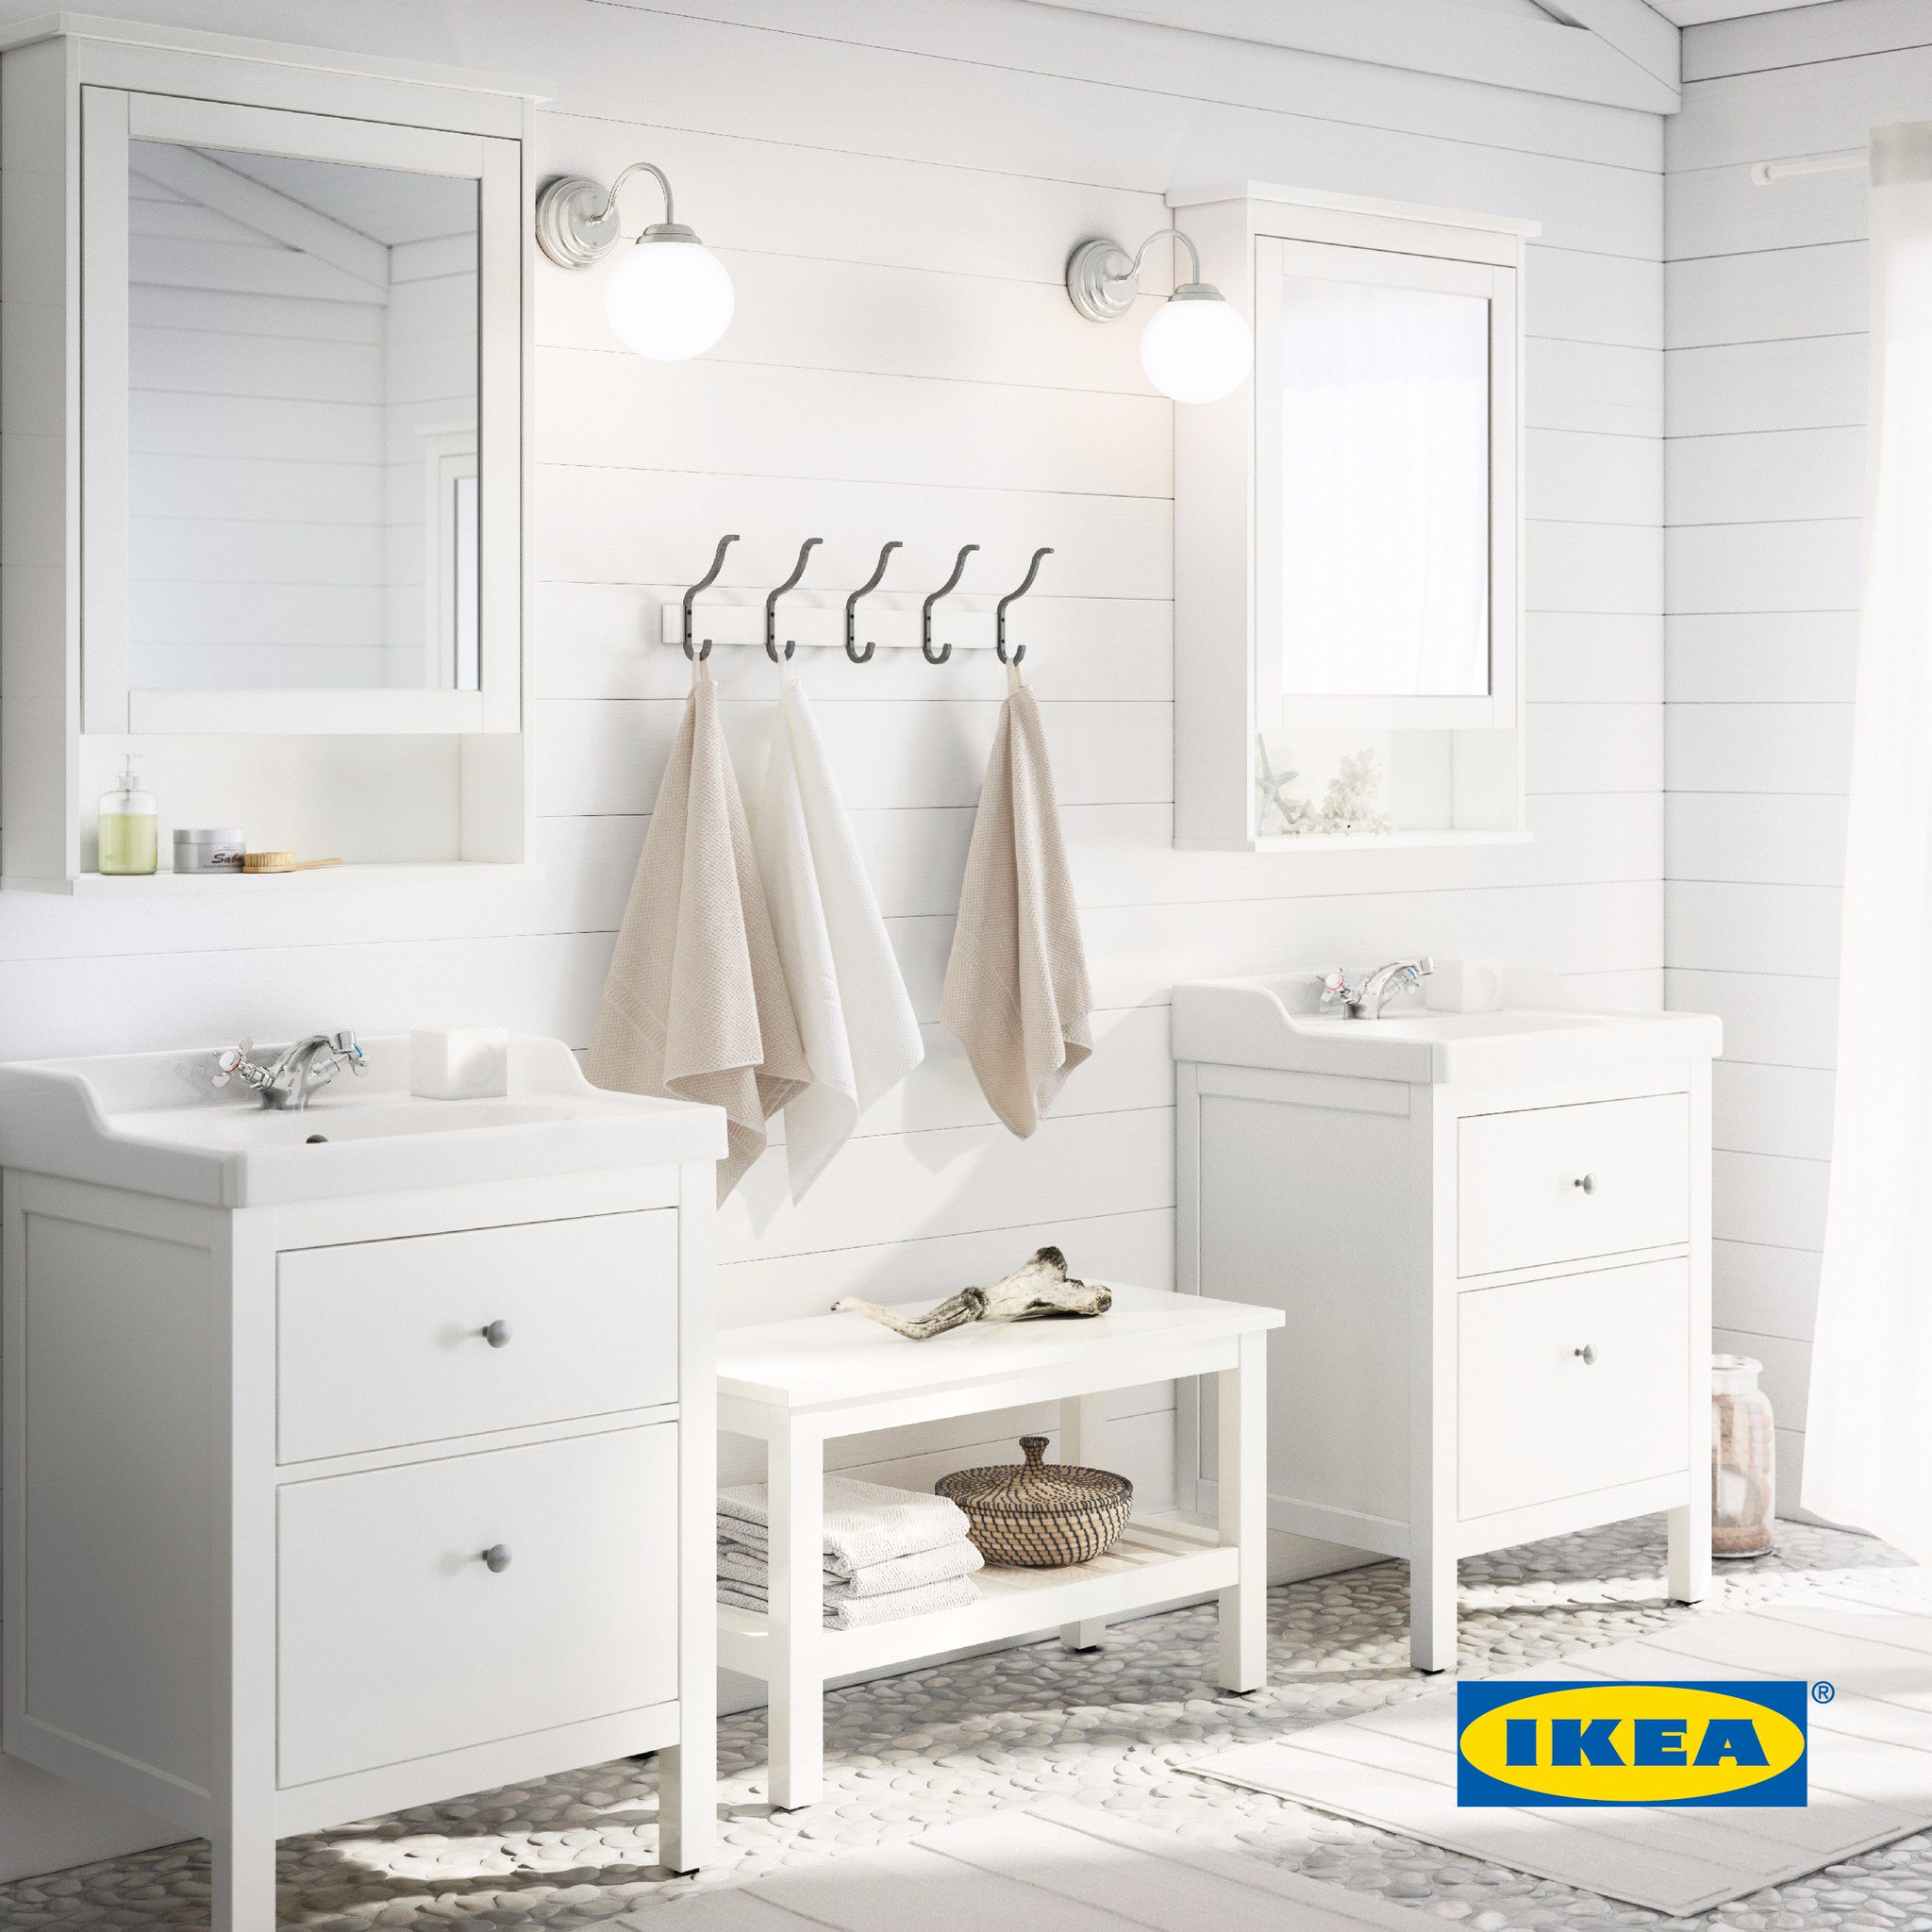 "IKEA Jordan on Twitter: ""You can easily turn your bathroom into a"